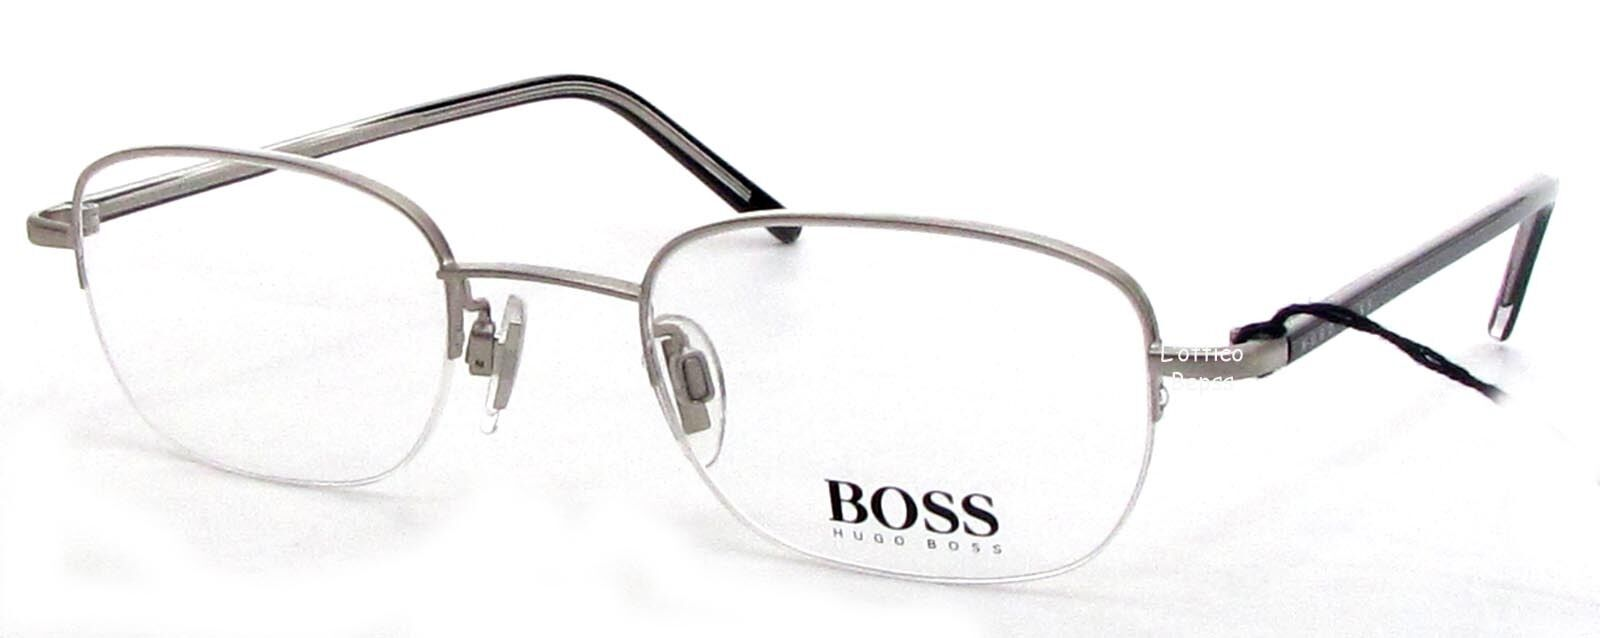 bee84e9642d8e SPECTACLES FRAME HUGO BOSS HB1558 SW 48 colour SILVER MATTE SOLD OUT ...